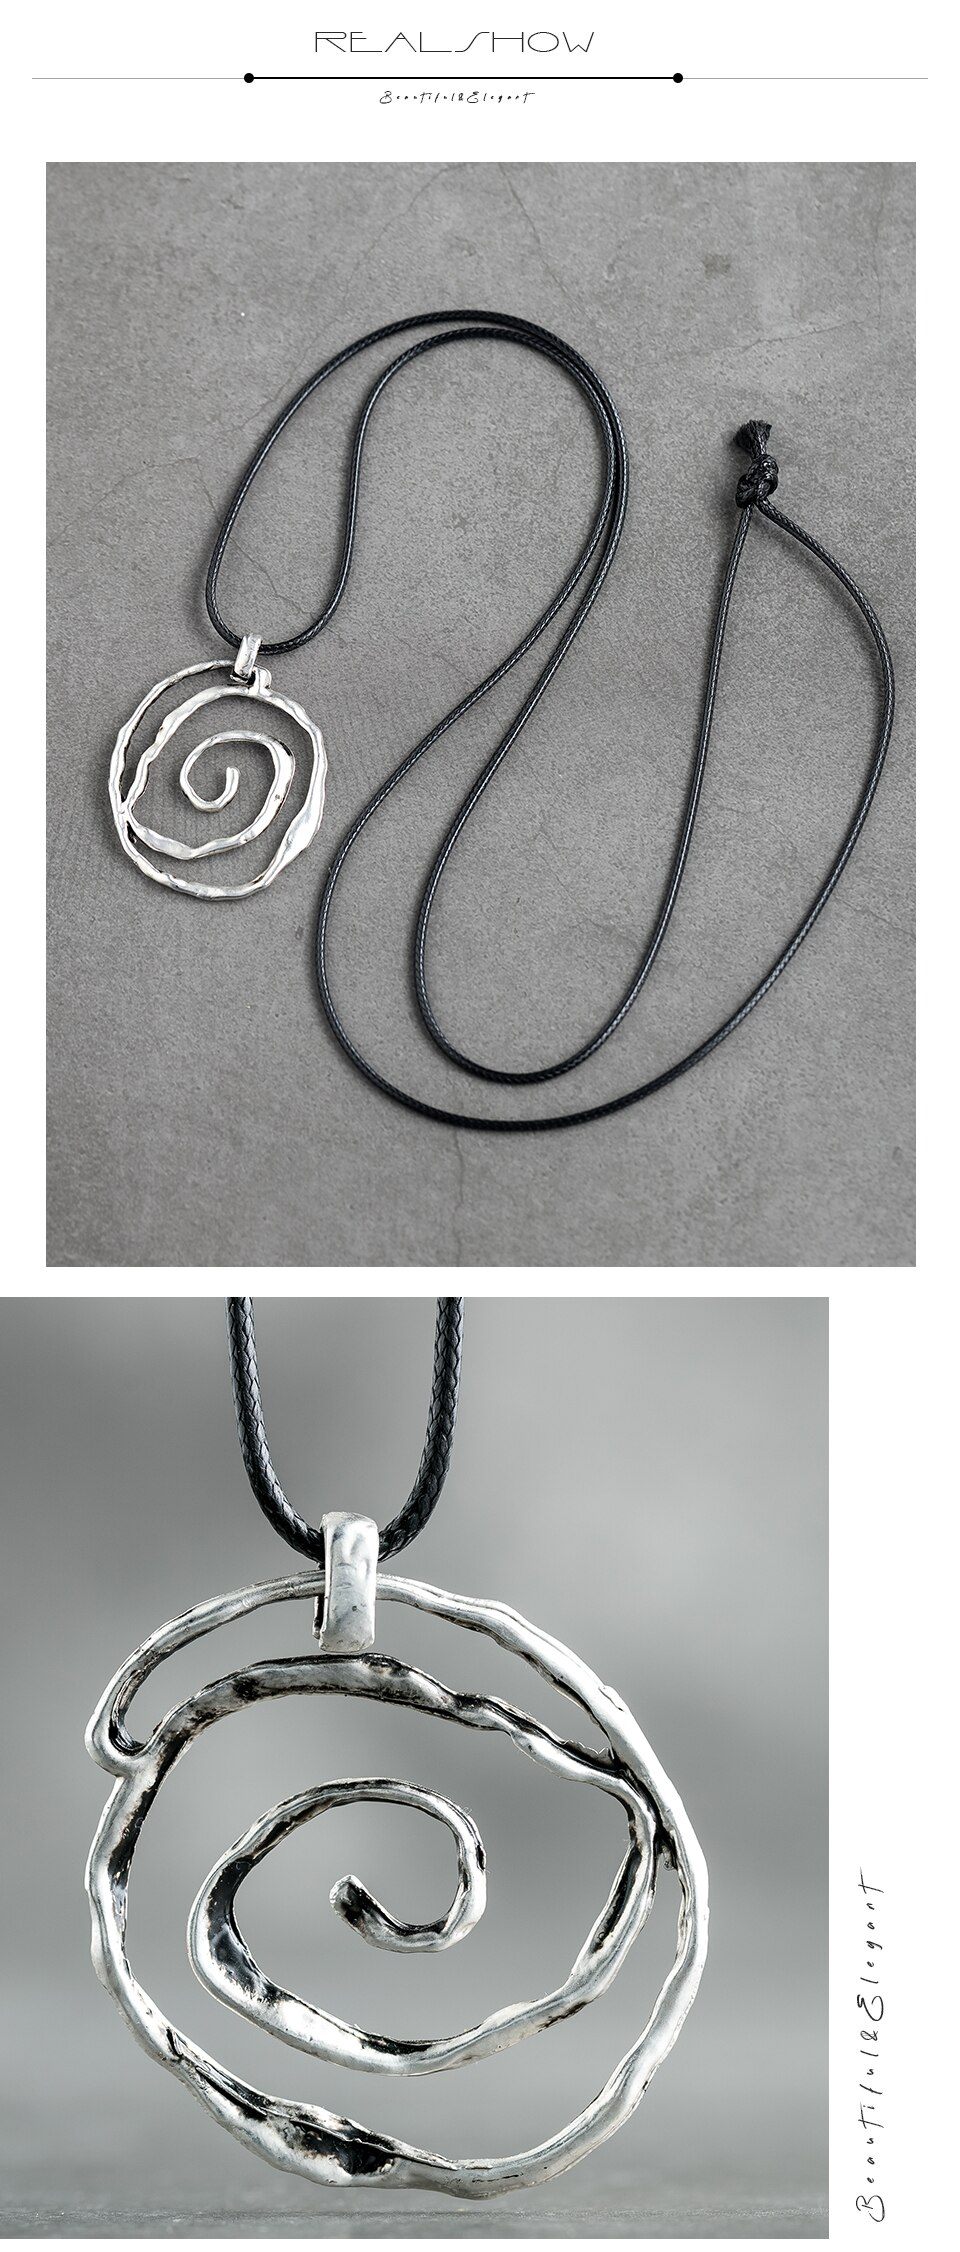 Vintage Necklace Circular Circle Rope Long Chain Unicorn Necklace Zinc Alloy Handmade Pendant Gifts For Women Fashion Jewelry